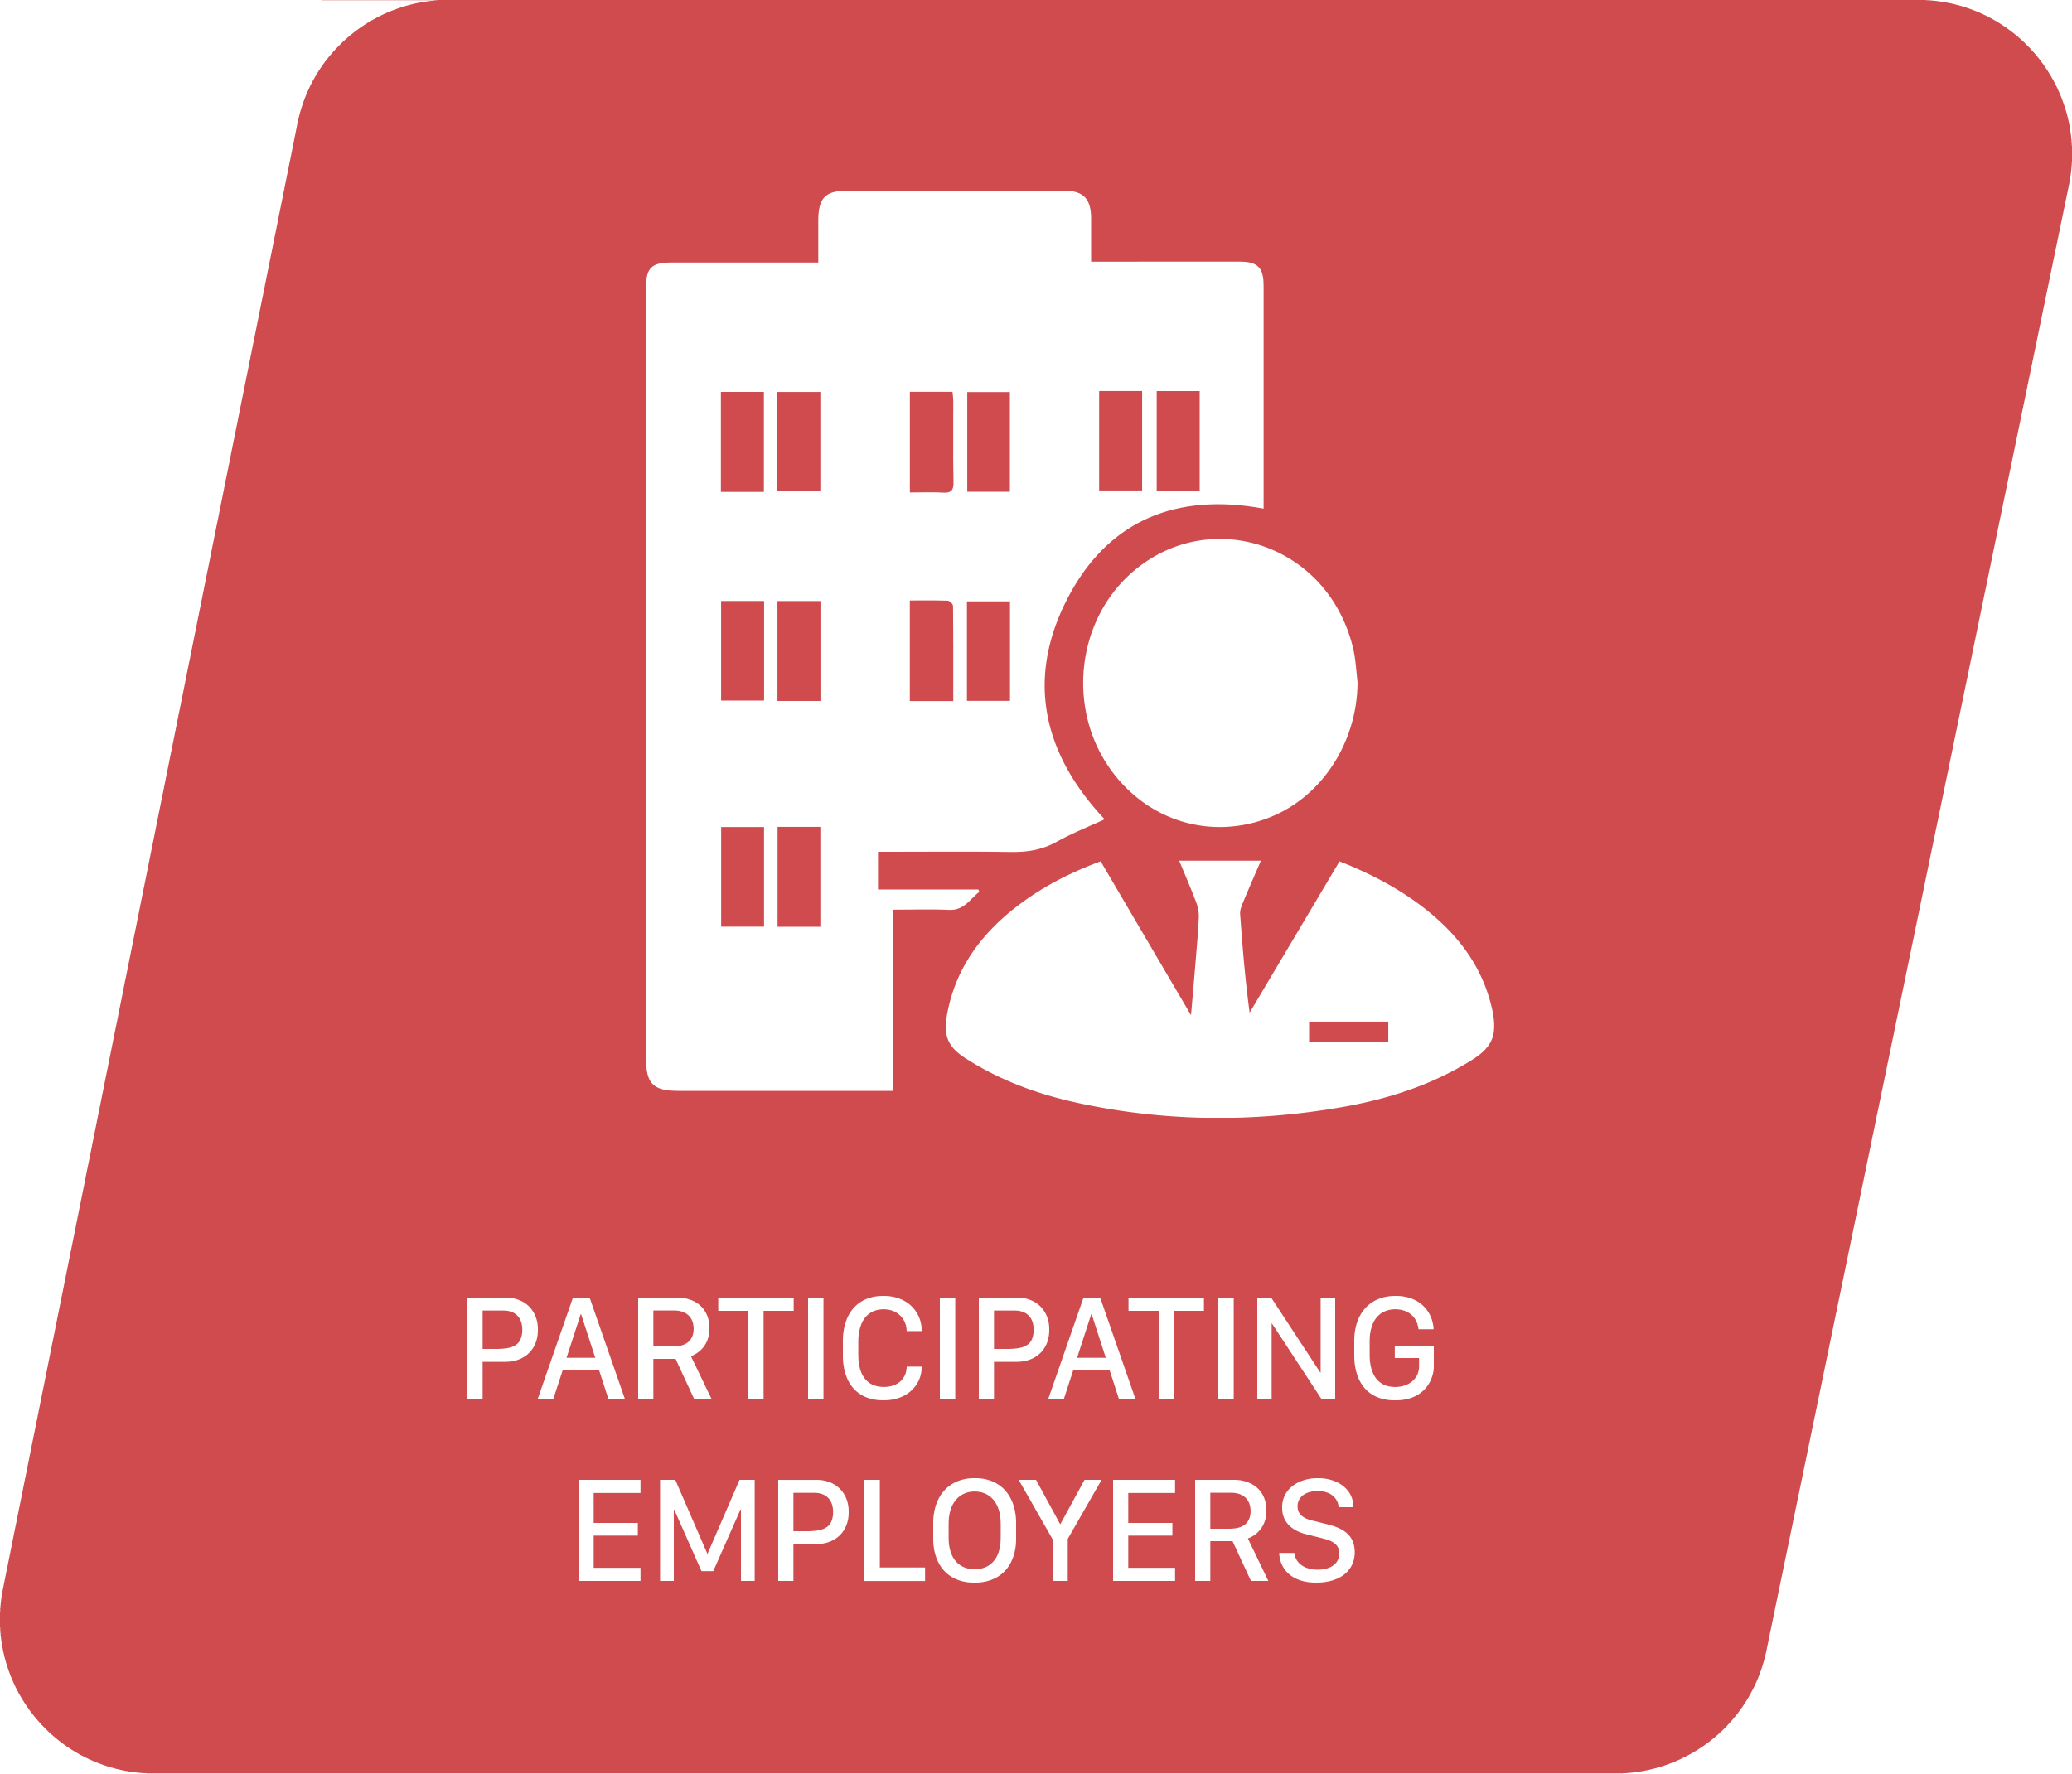 Participating Employers